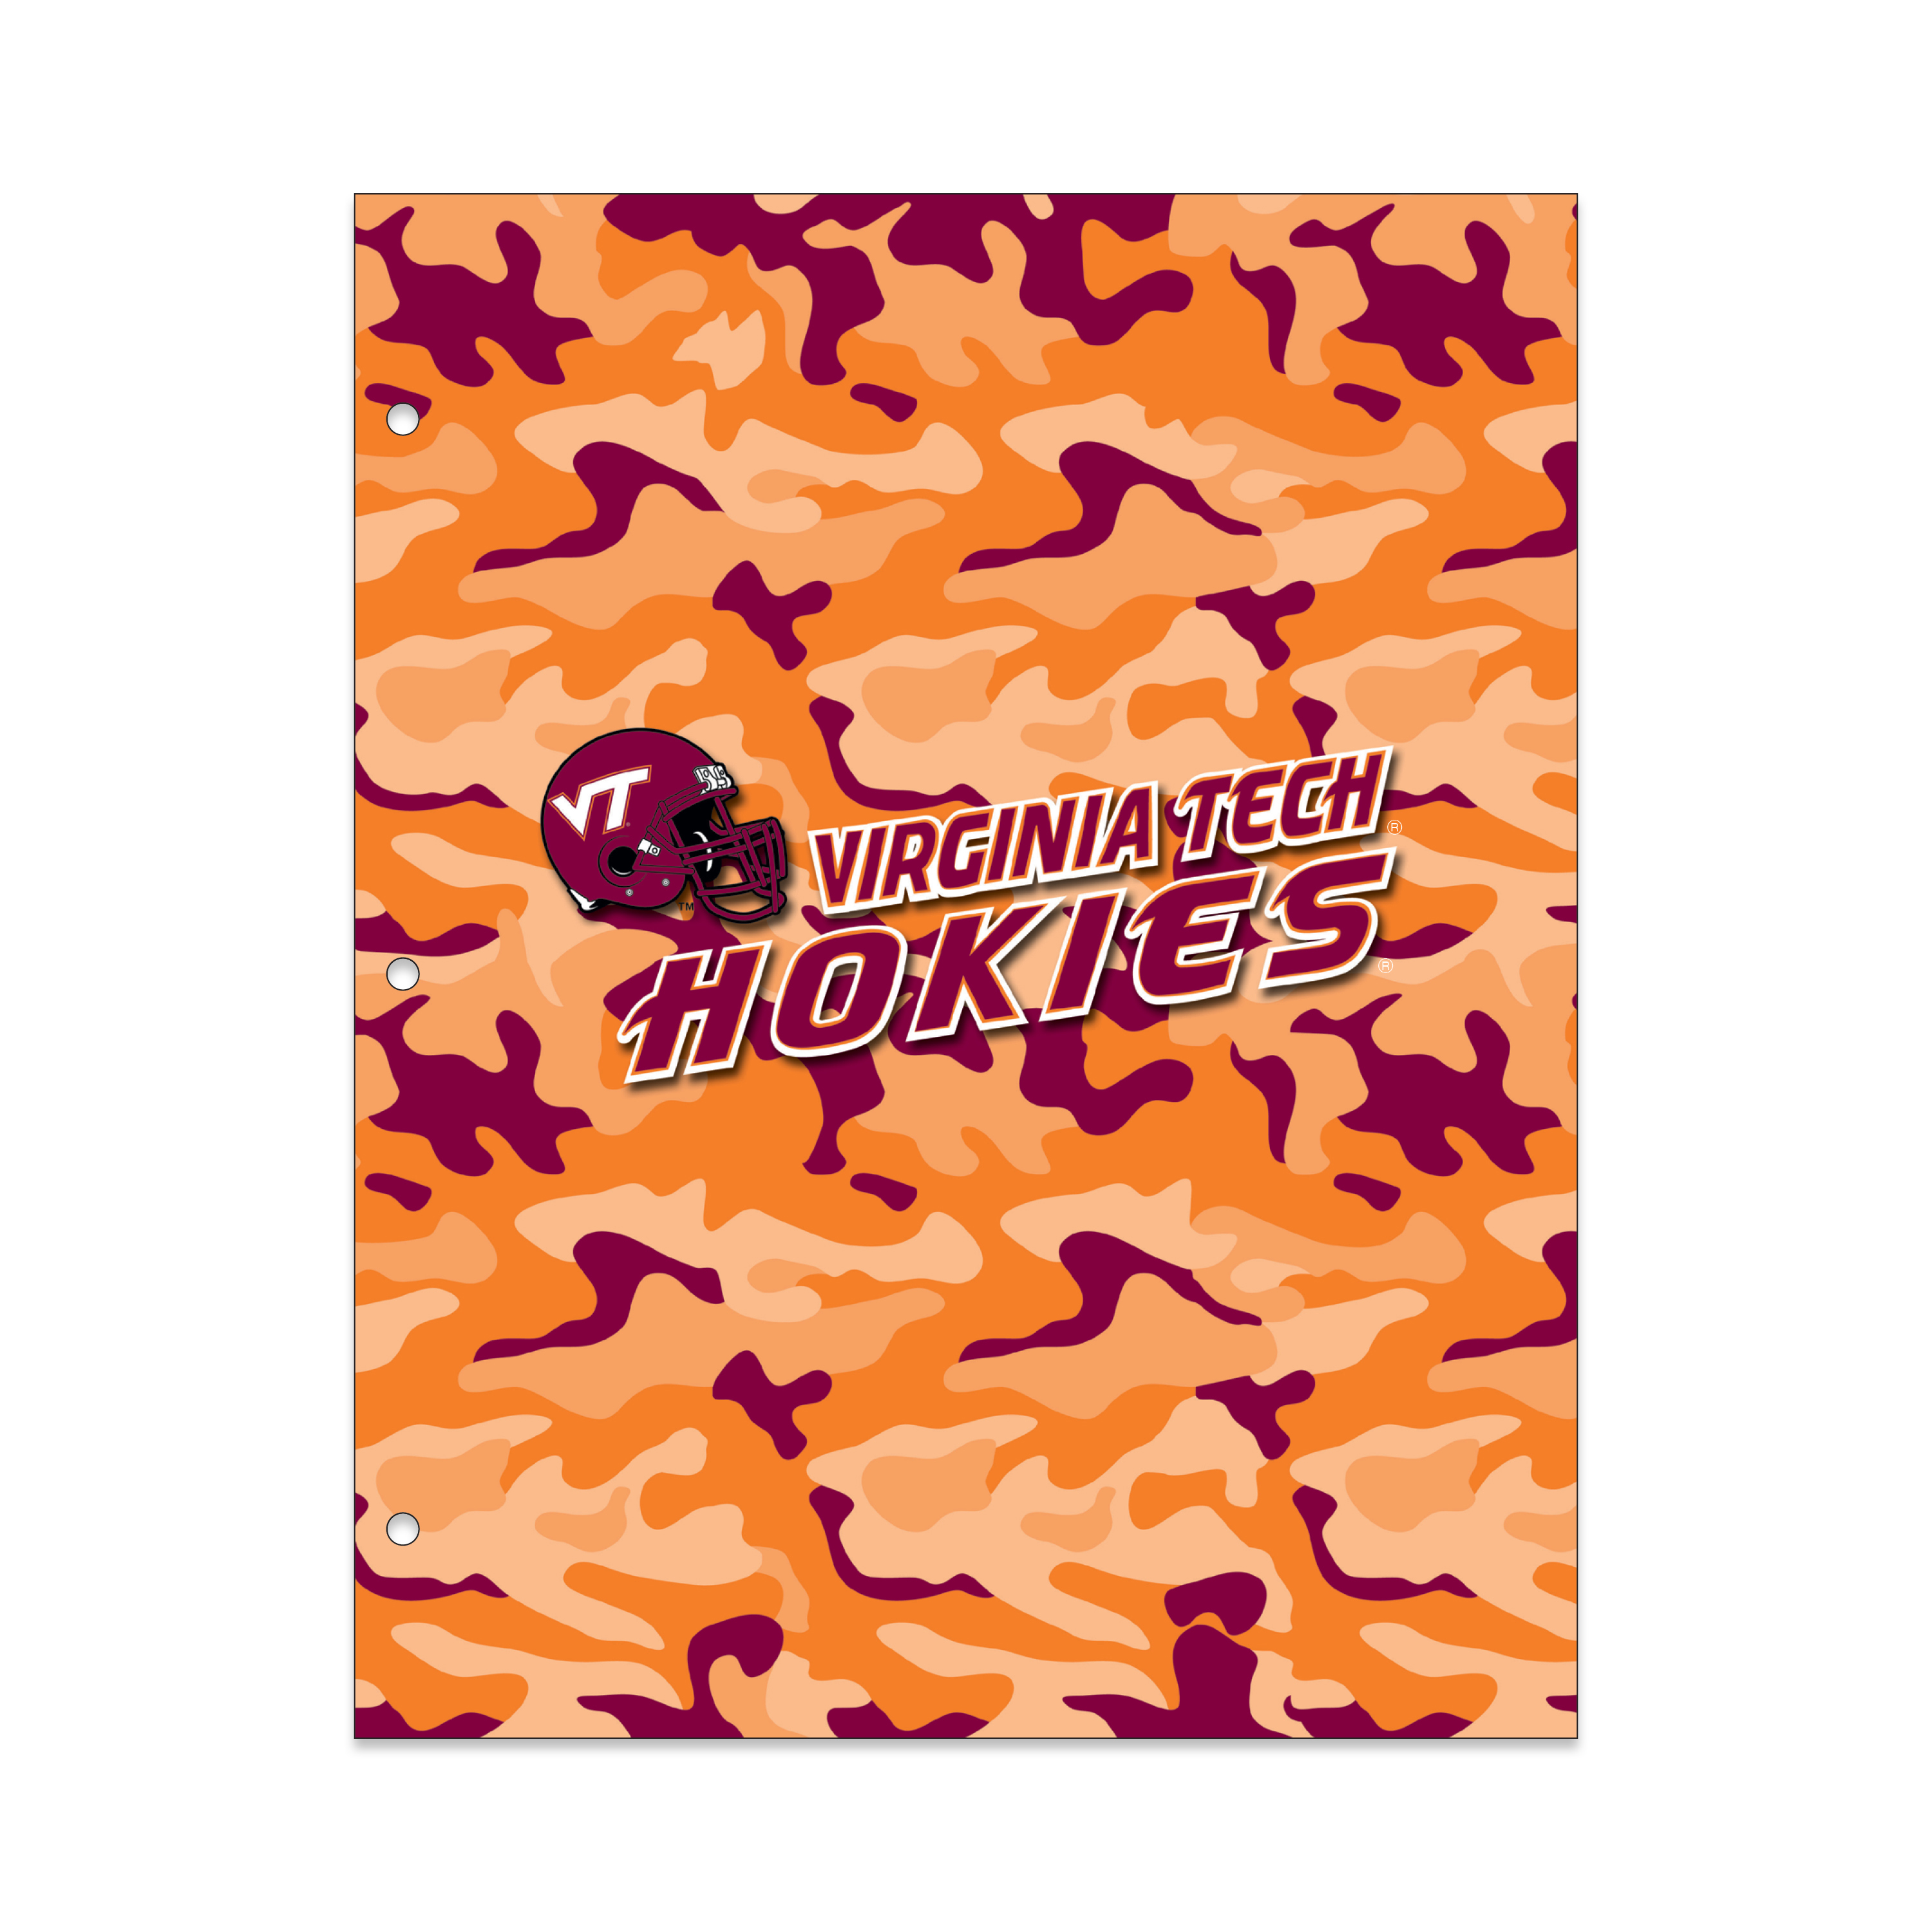 NCAA Virginia Tech Hokies 2 Pocket Portfolio, Three Hole Punched, Fits Letter Size